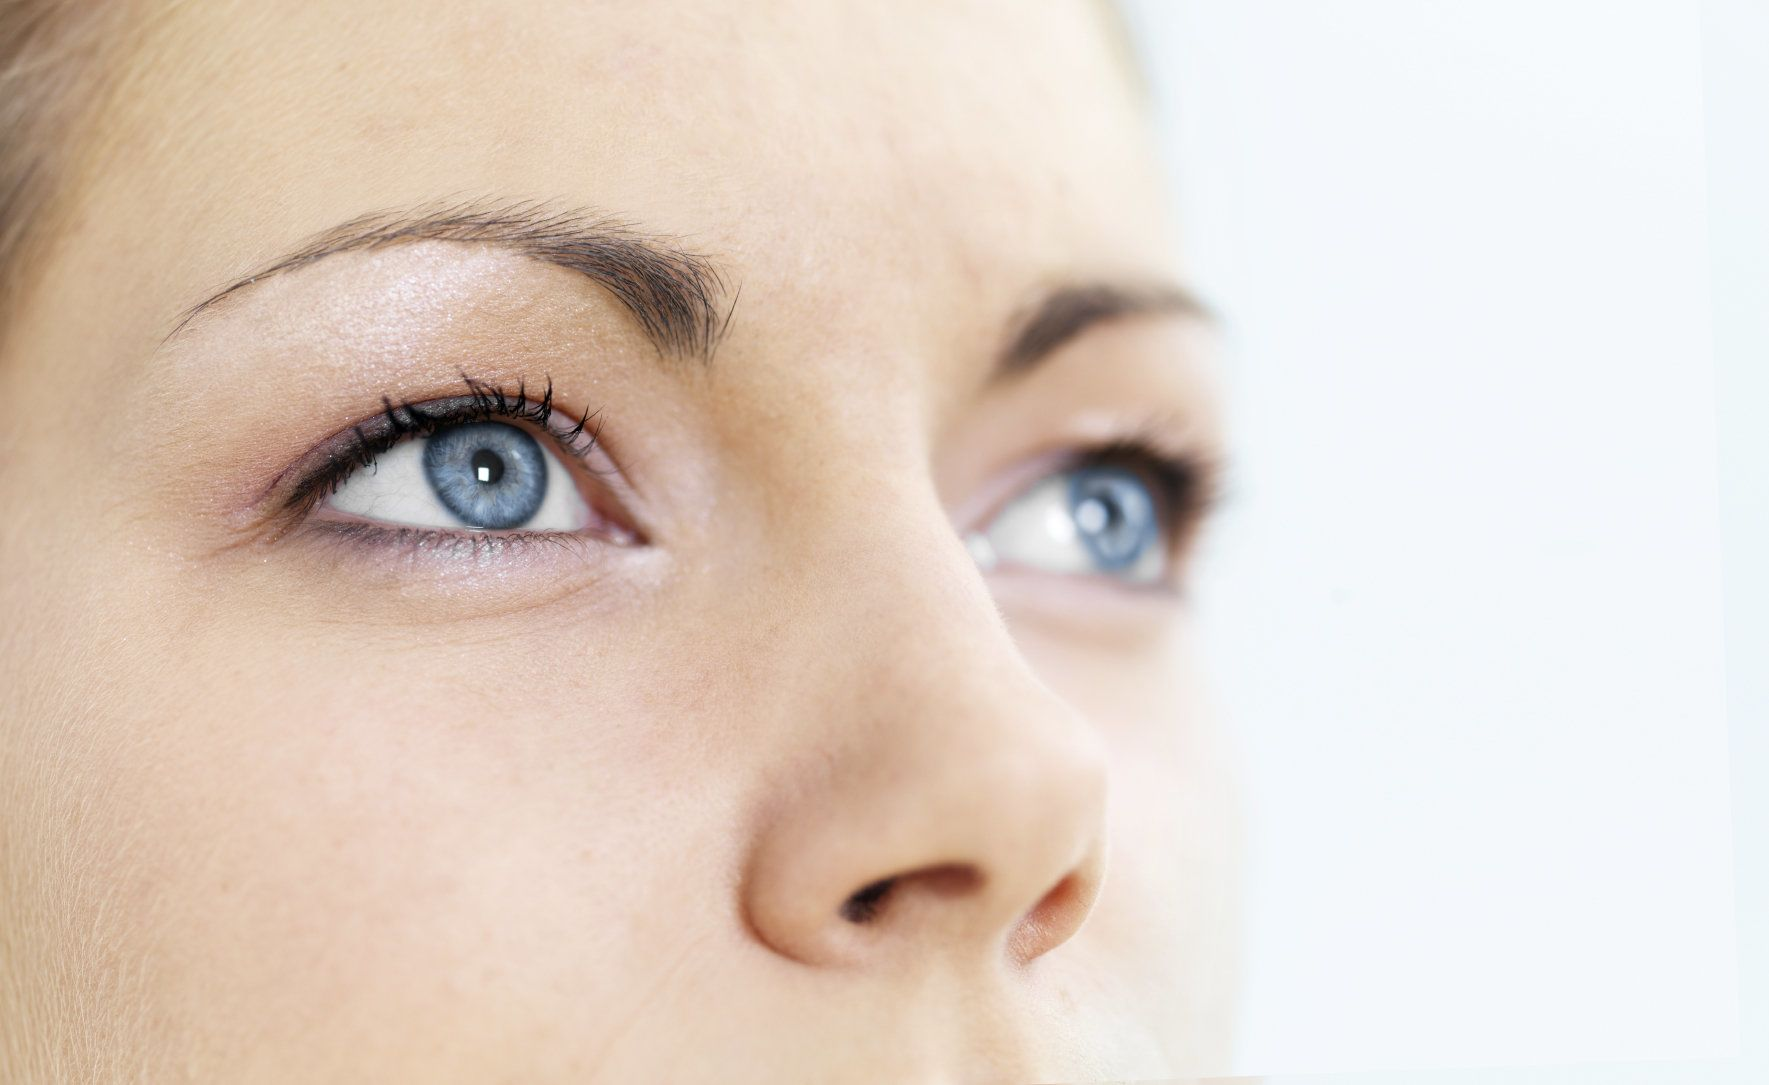 Up close photo of woman's blue eyes